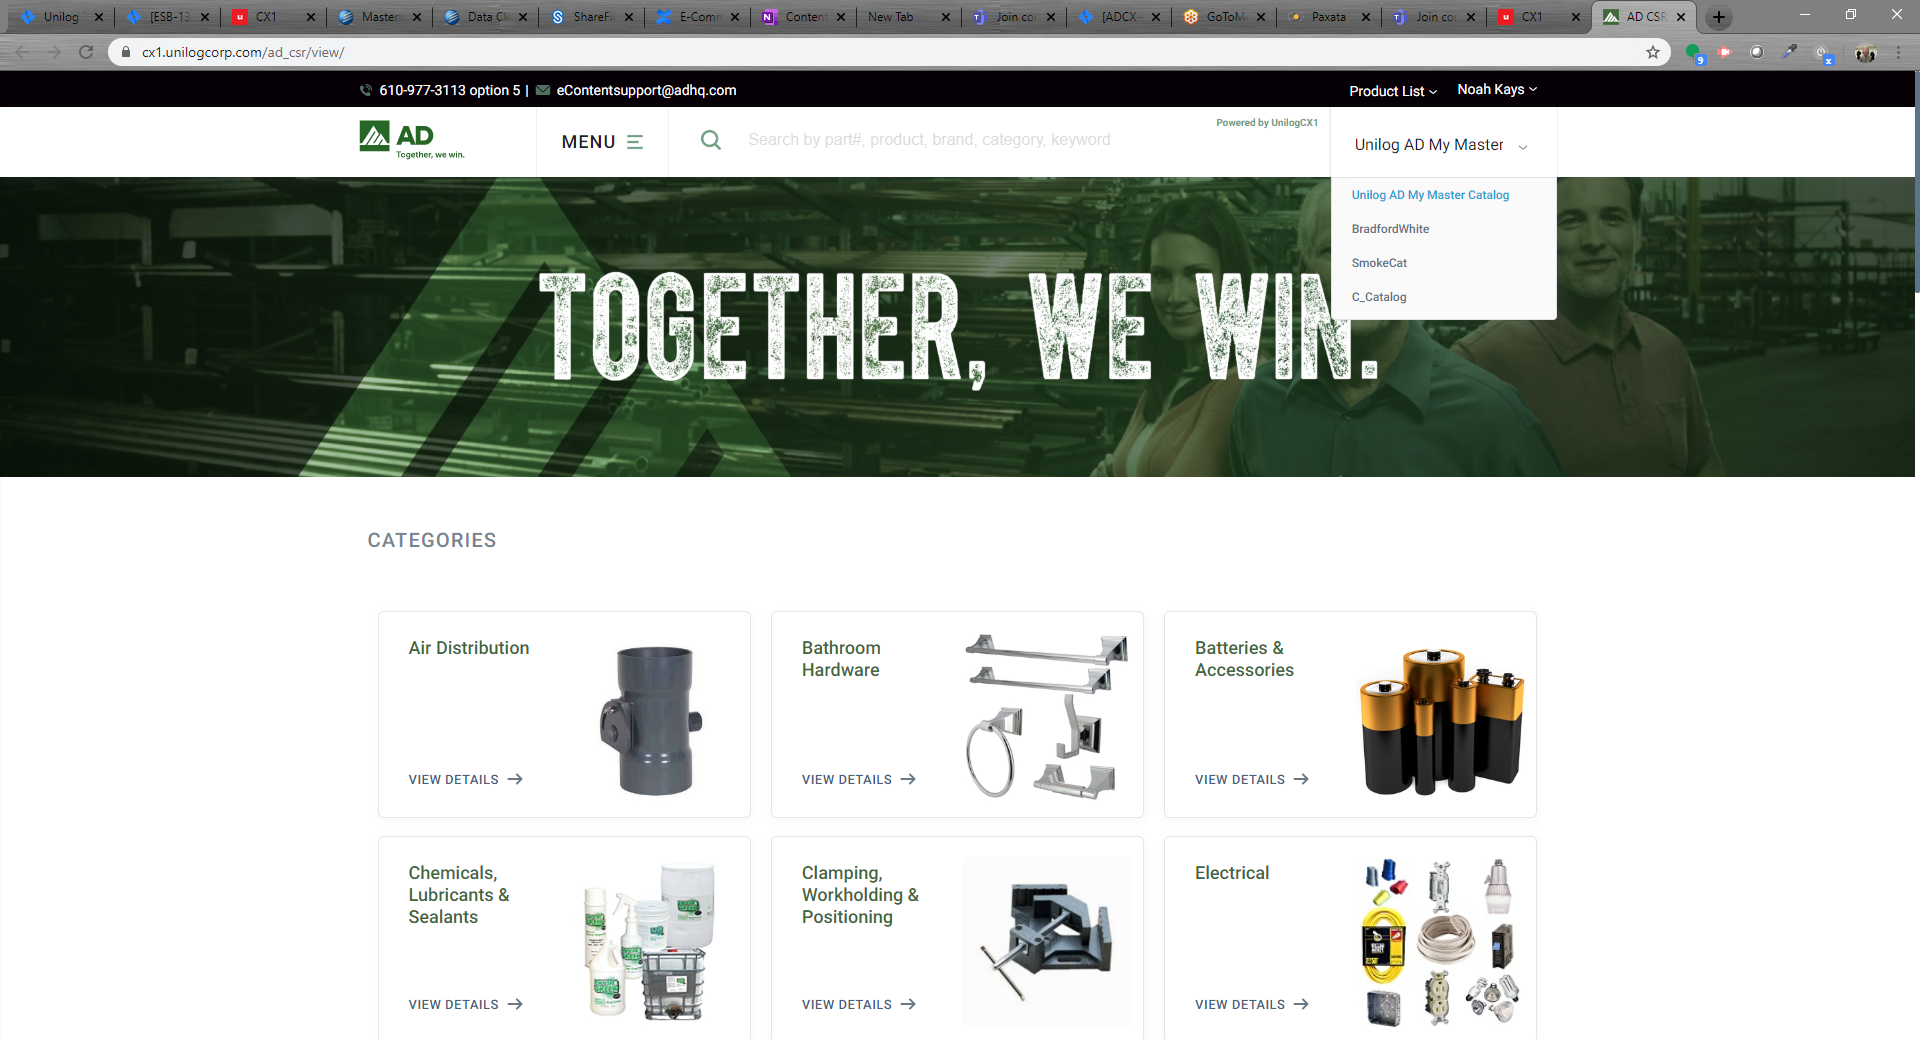 CSR portal offers a clean interface and web view to mimic an online storefront